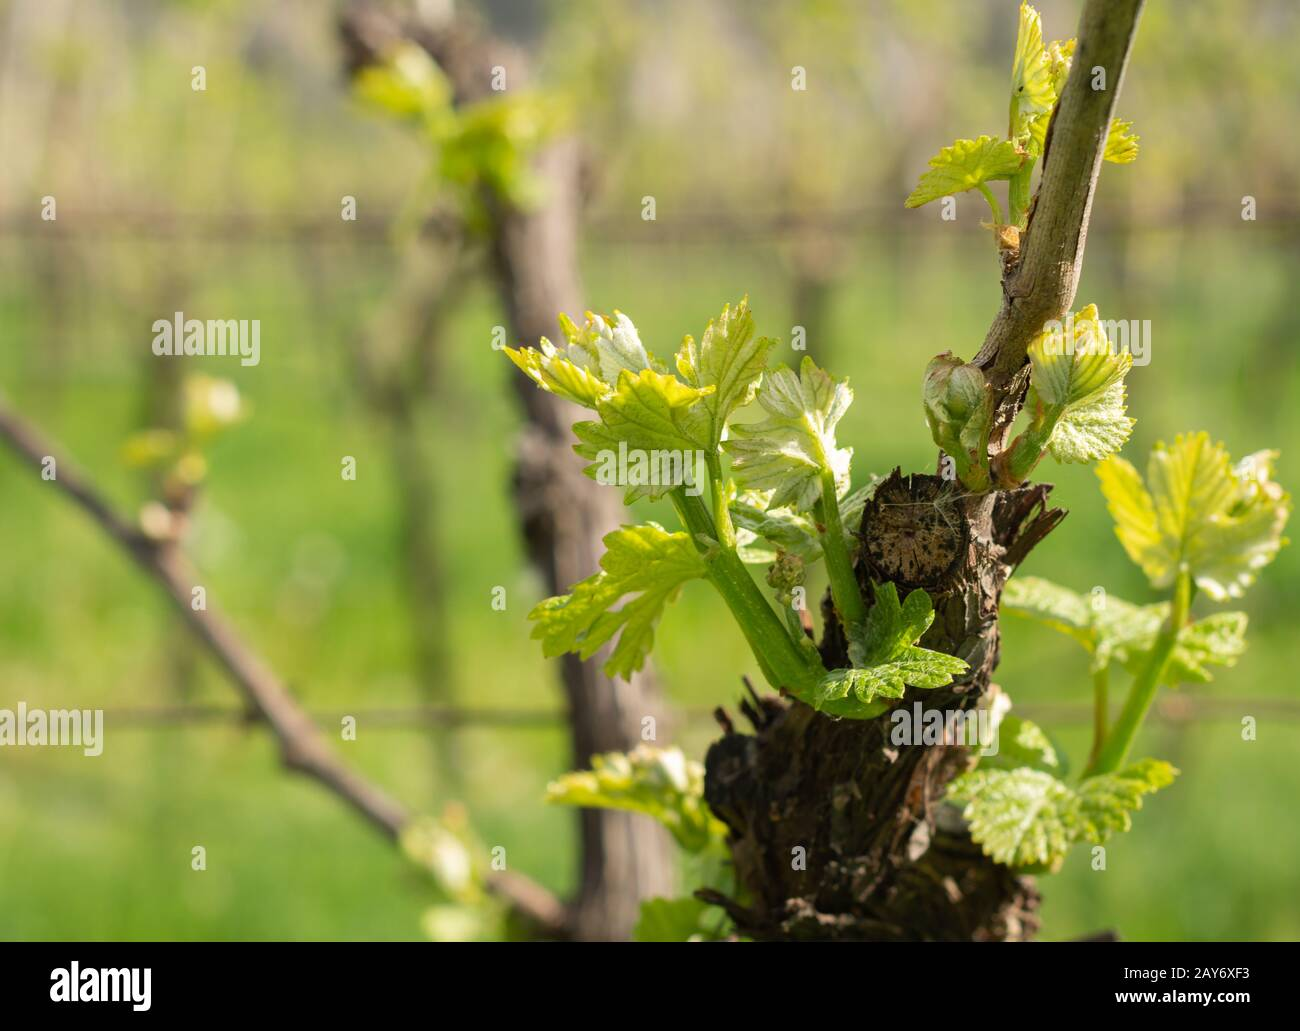 The vineyard in spring: vine shoots growing in spring. Artistic blurred effect. Springtime. Stock Photo